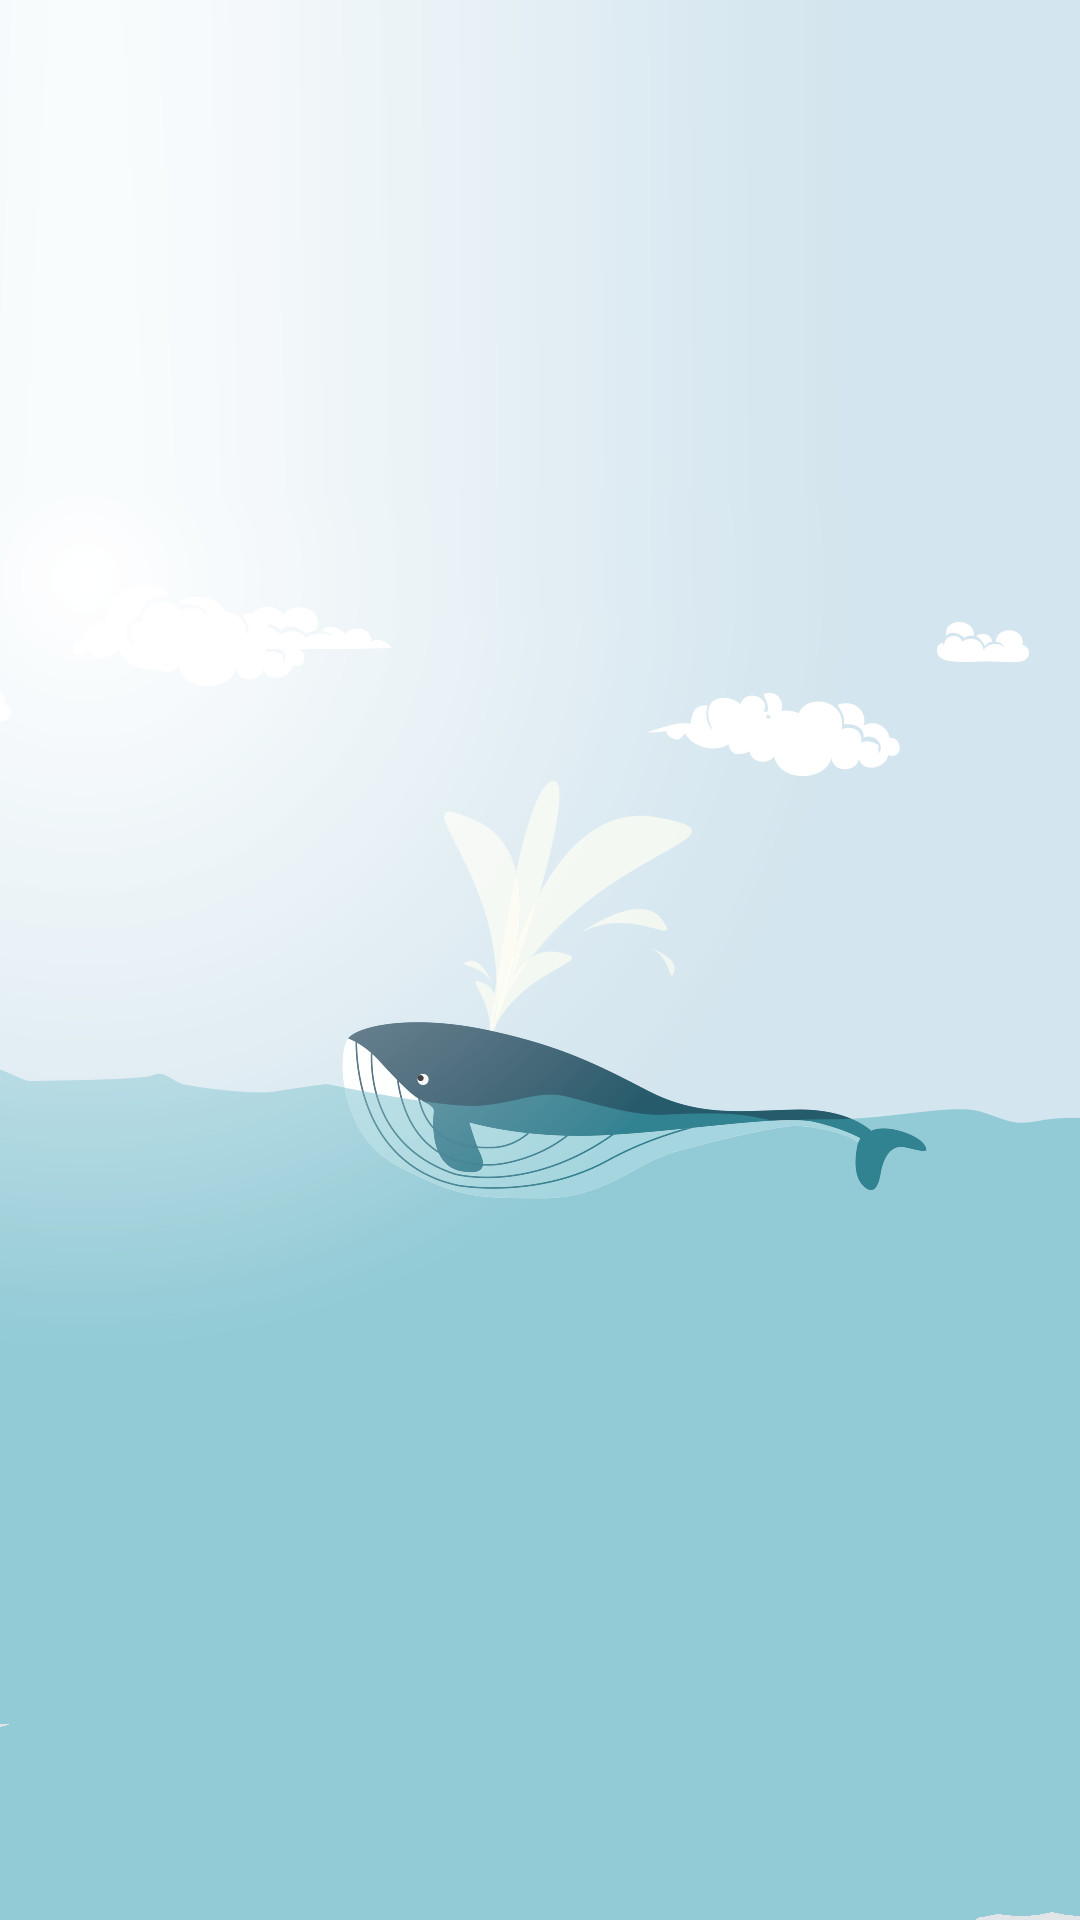 Minimal iPhone wallpapers ❤ Happy whale More · Mac WallpaperSummer WallpaperMinimalist  WallpaperDesktop …